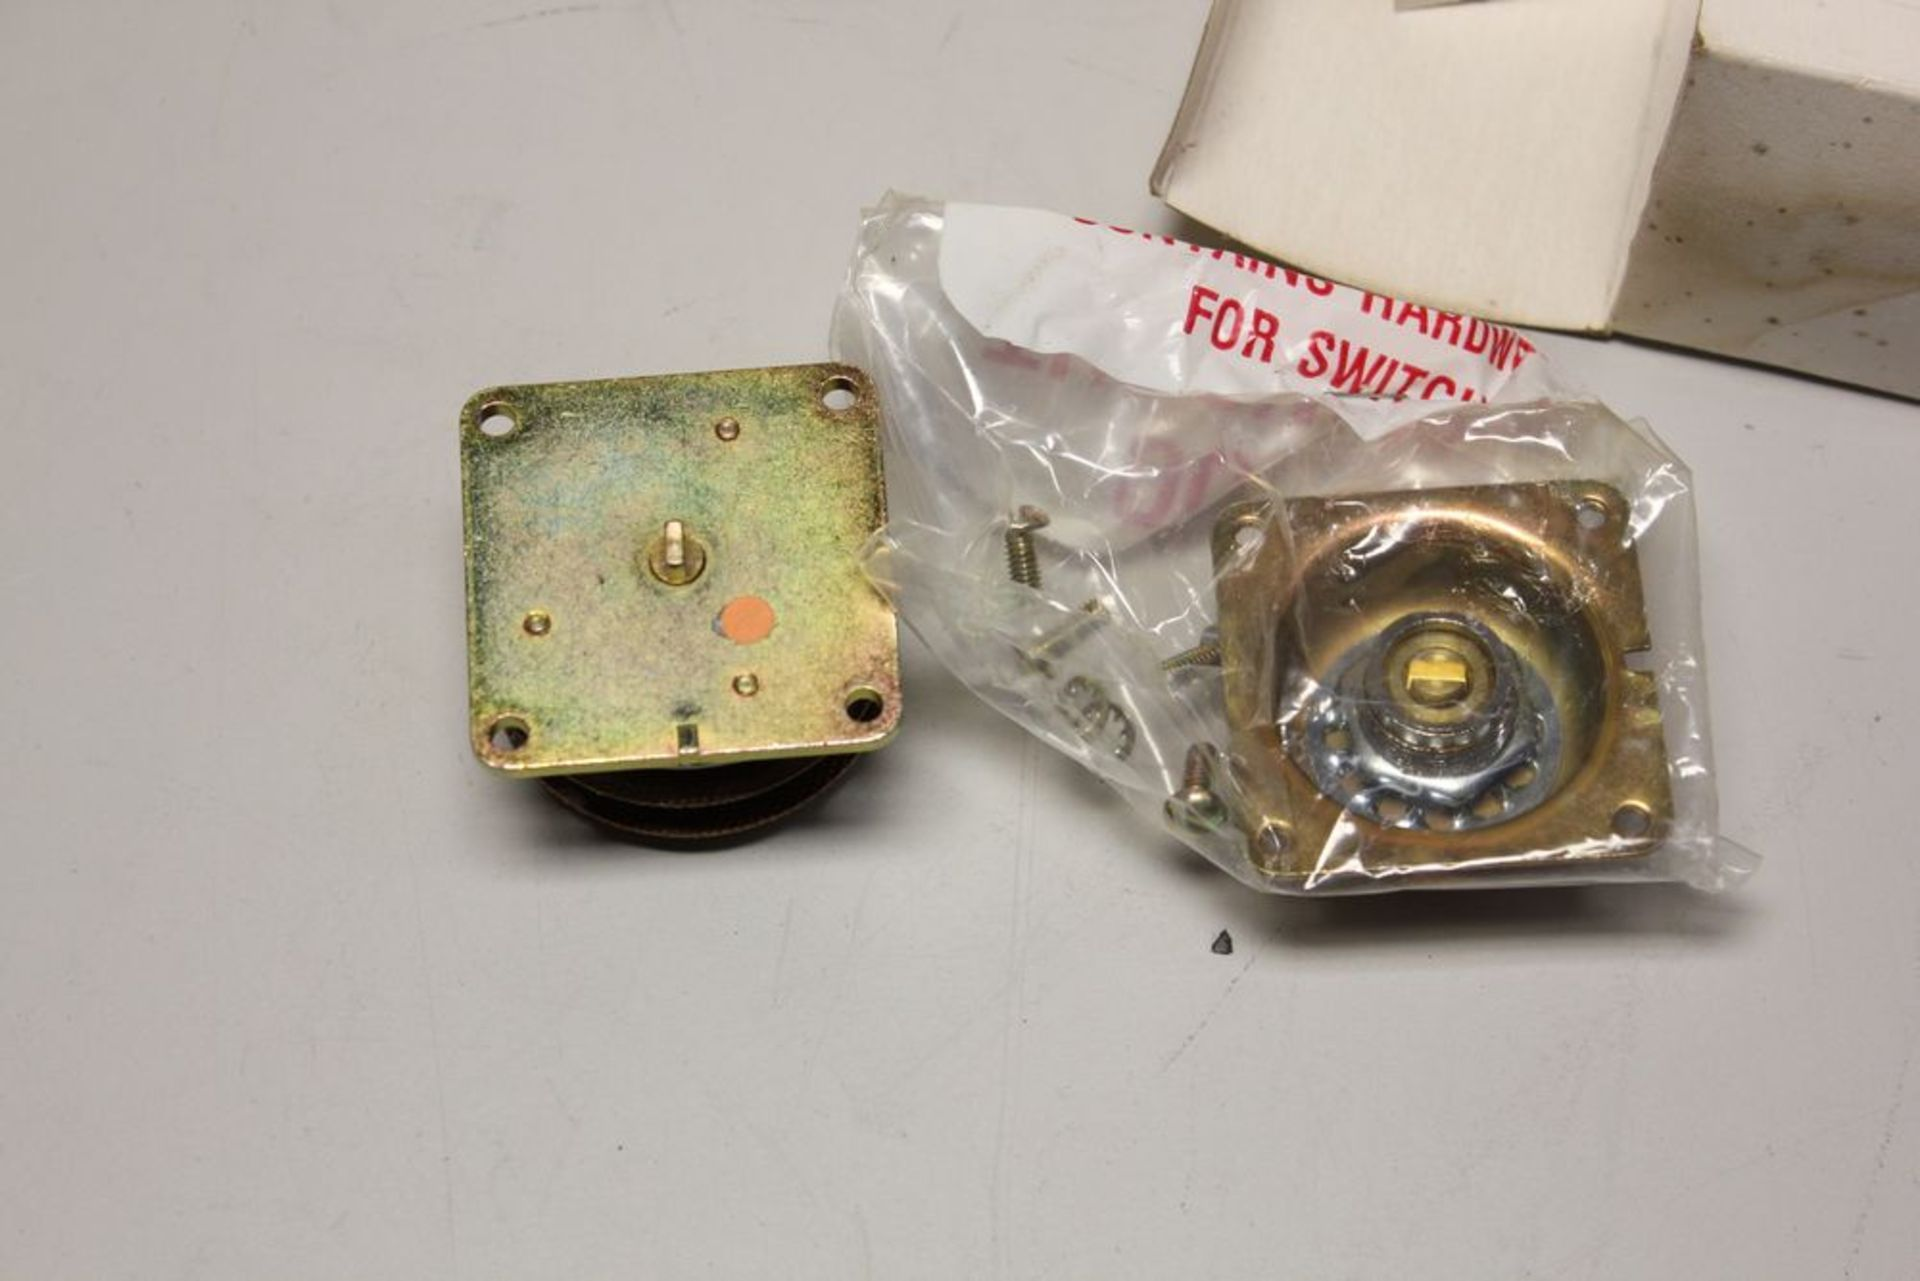 NEW ELECTROSWITCH ROTARY SWITCH - Image 3 of 8